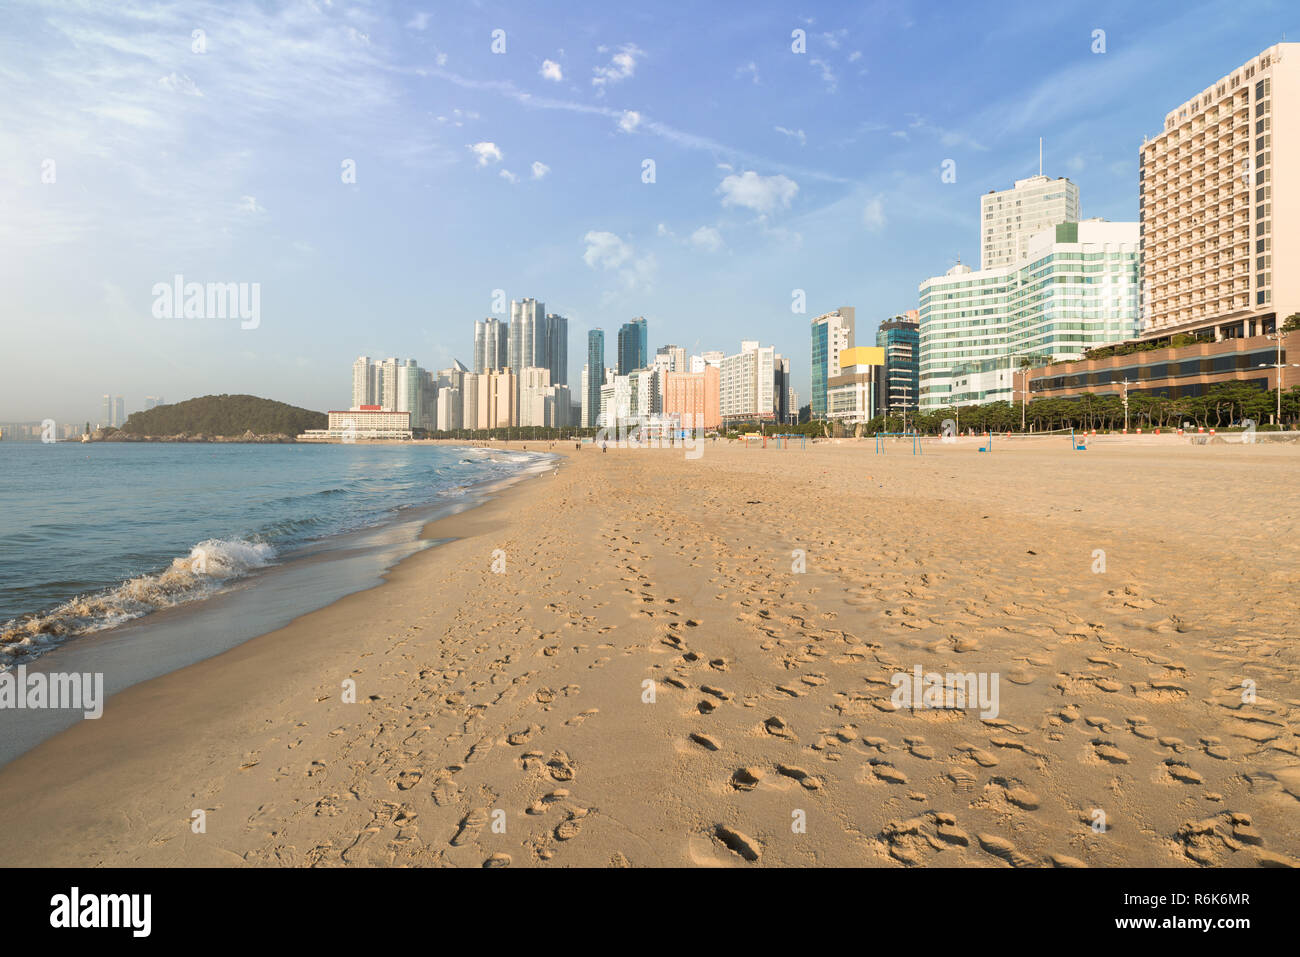 Haeundae beach is Busan's most popular beach because of its easy access from downtown Busan. And It is one of the most famous beaches in South Korea. - Stock Image